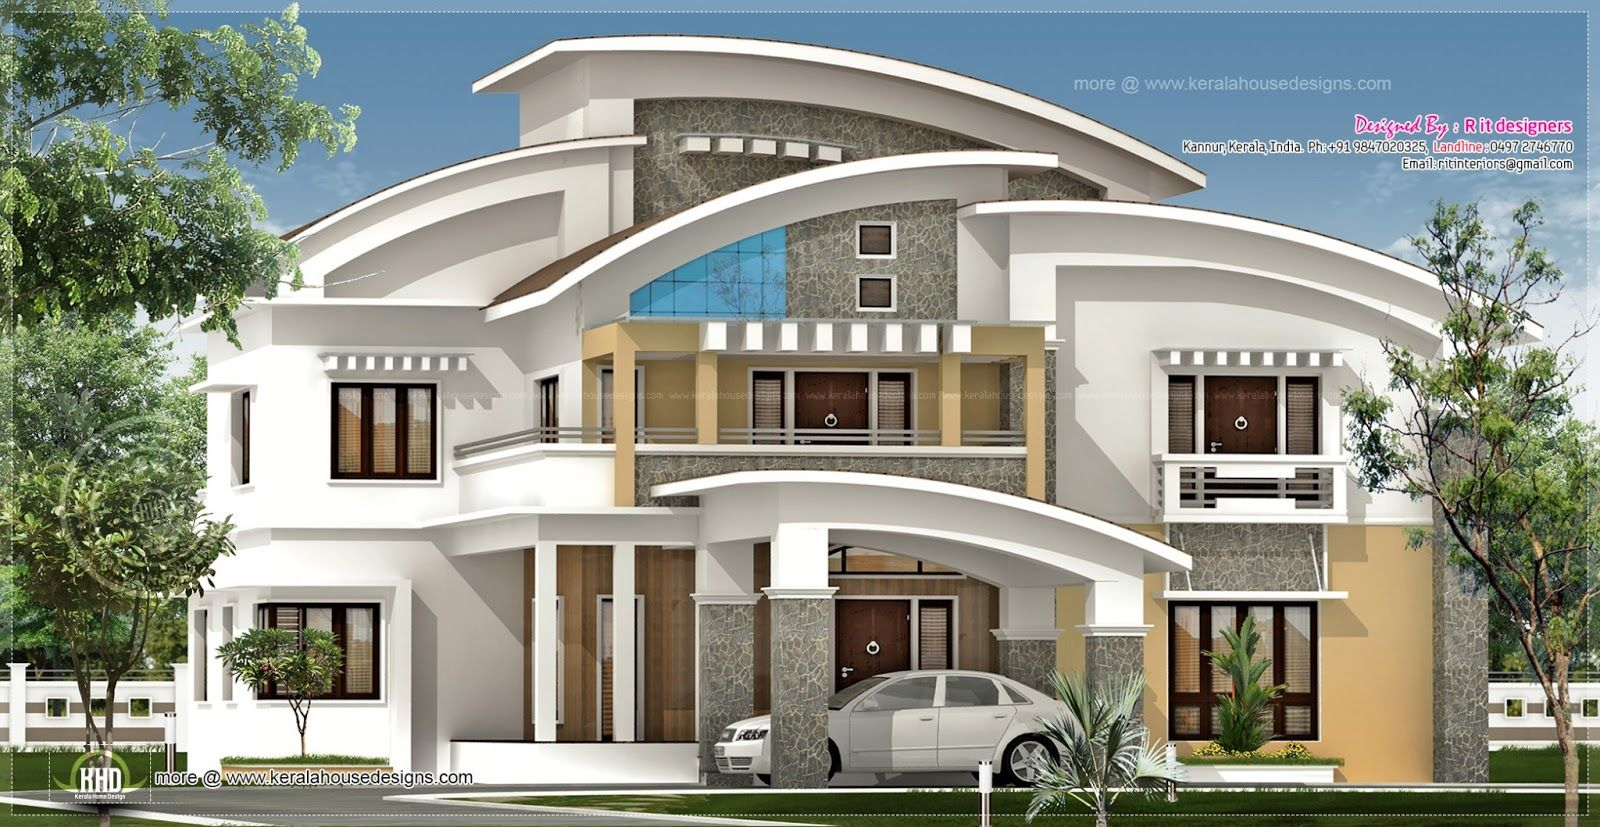 Square feet luxury villa exterior kerala home design floor for One floor house exterior design